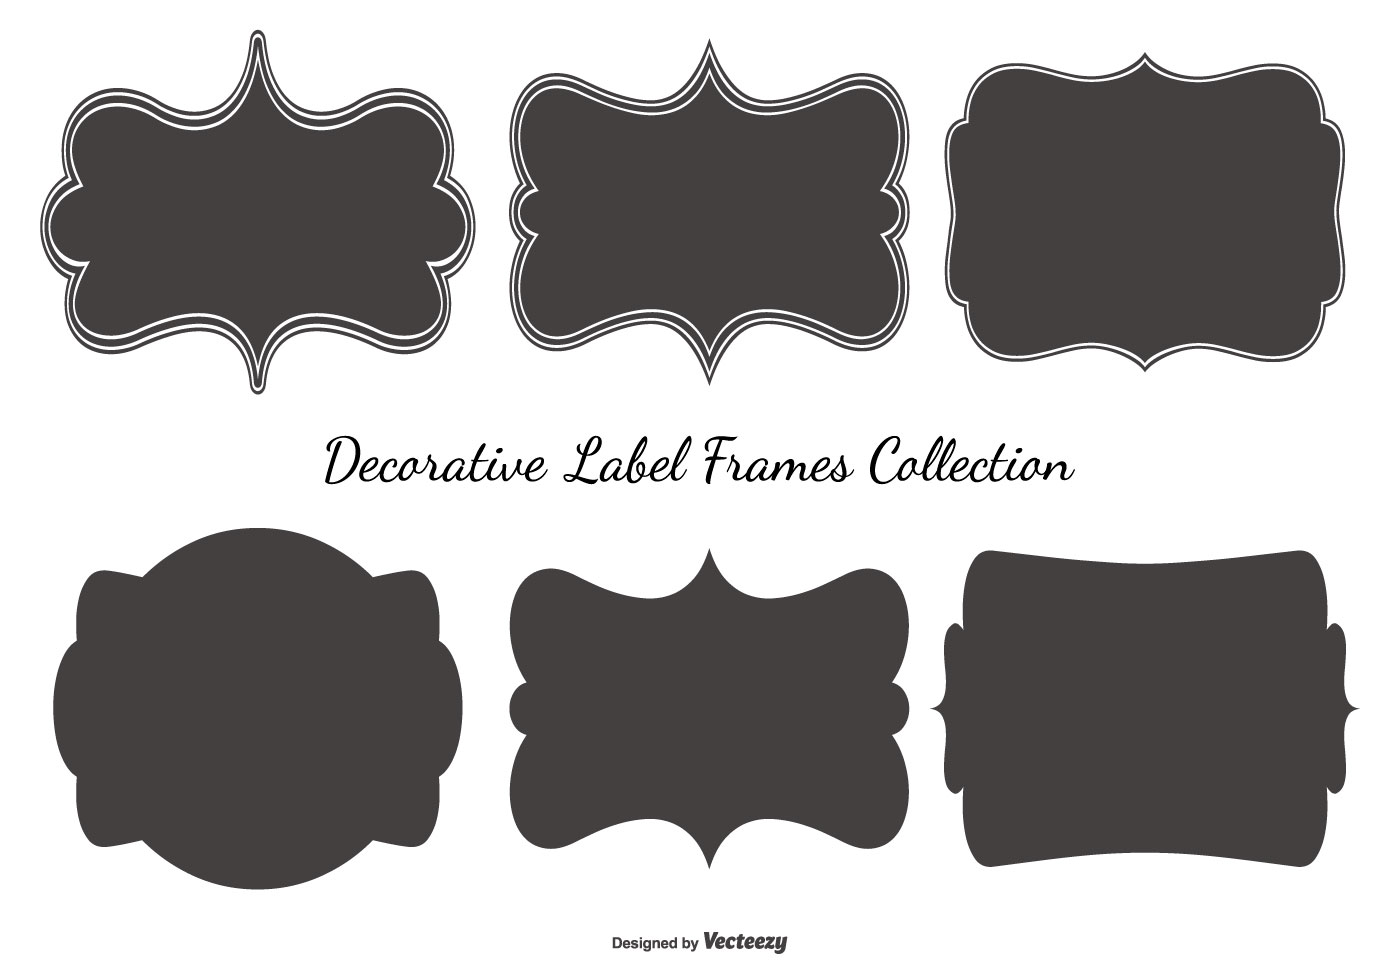 Black Frame Glasses Vector : Blank Label Frames Collection - Download Free Vector Art ...